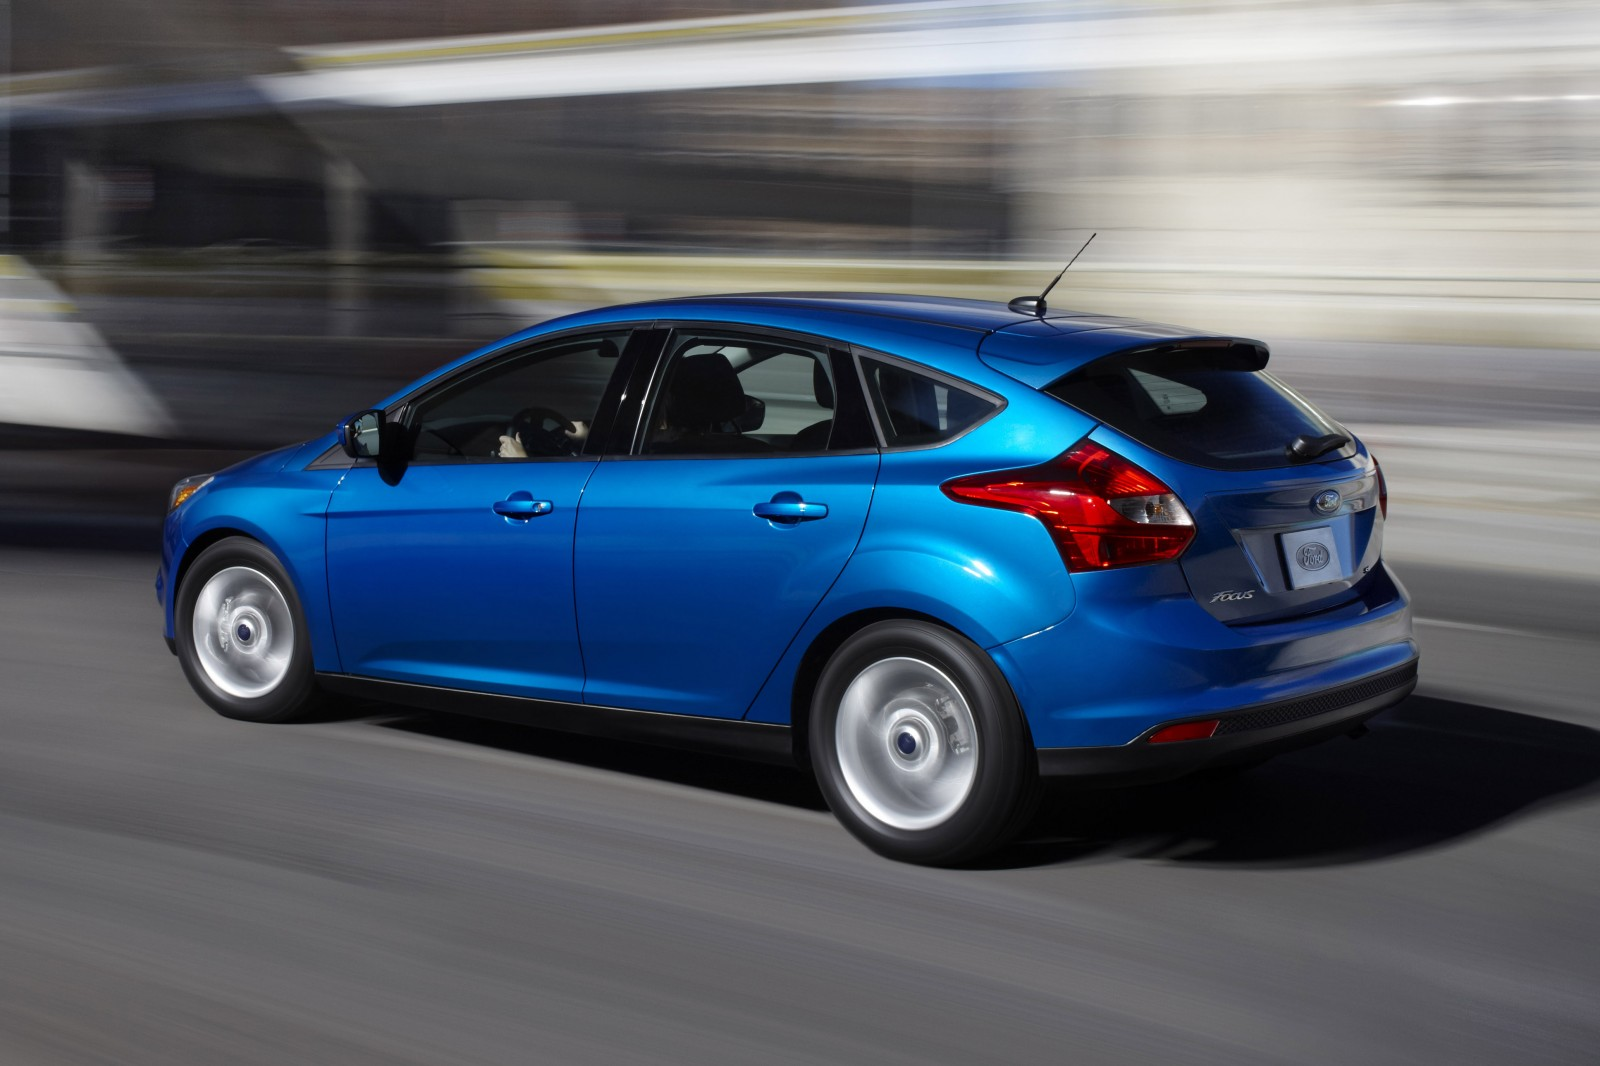 ford focus hatchback 2013 l neas frescas y juveniles lista de carros. Black Bedroom Furniture Sets. Home Design Ideas